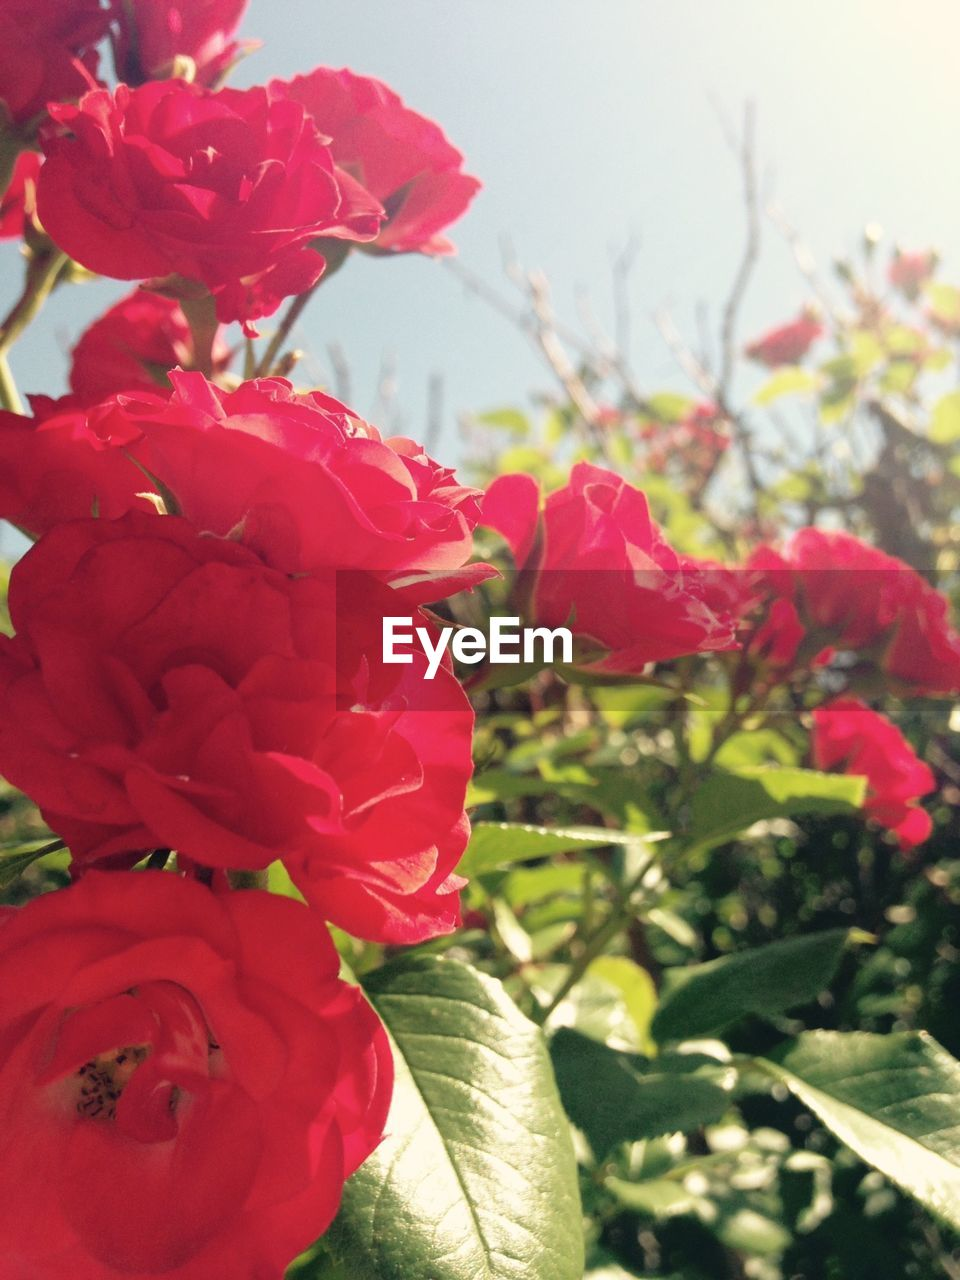 flower, beauty in nature, nature, petal, growth, red, fragility, freshness, plant, no people, flower head, day, outdoors, blooming, close-up